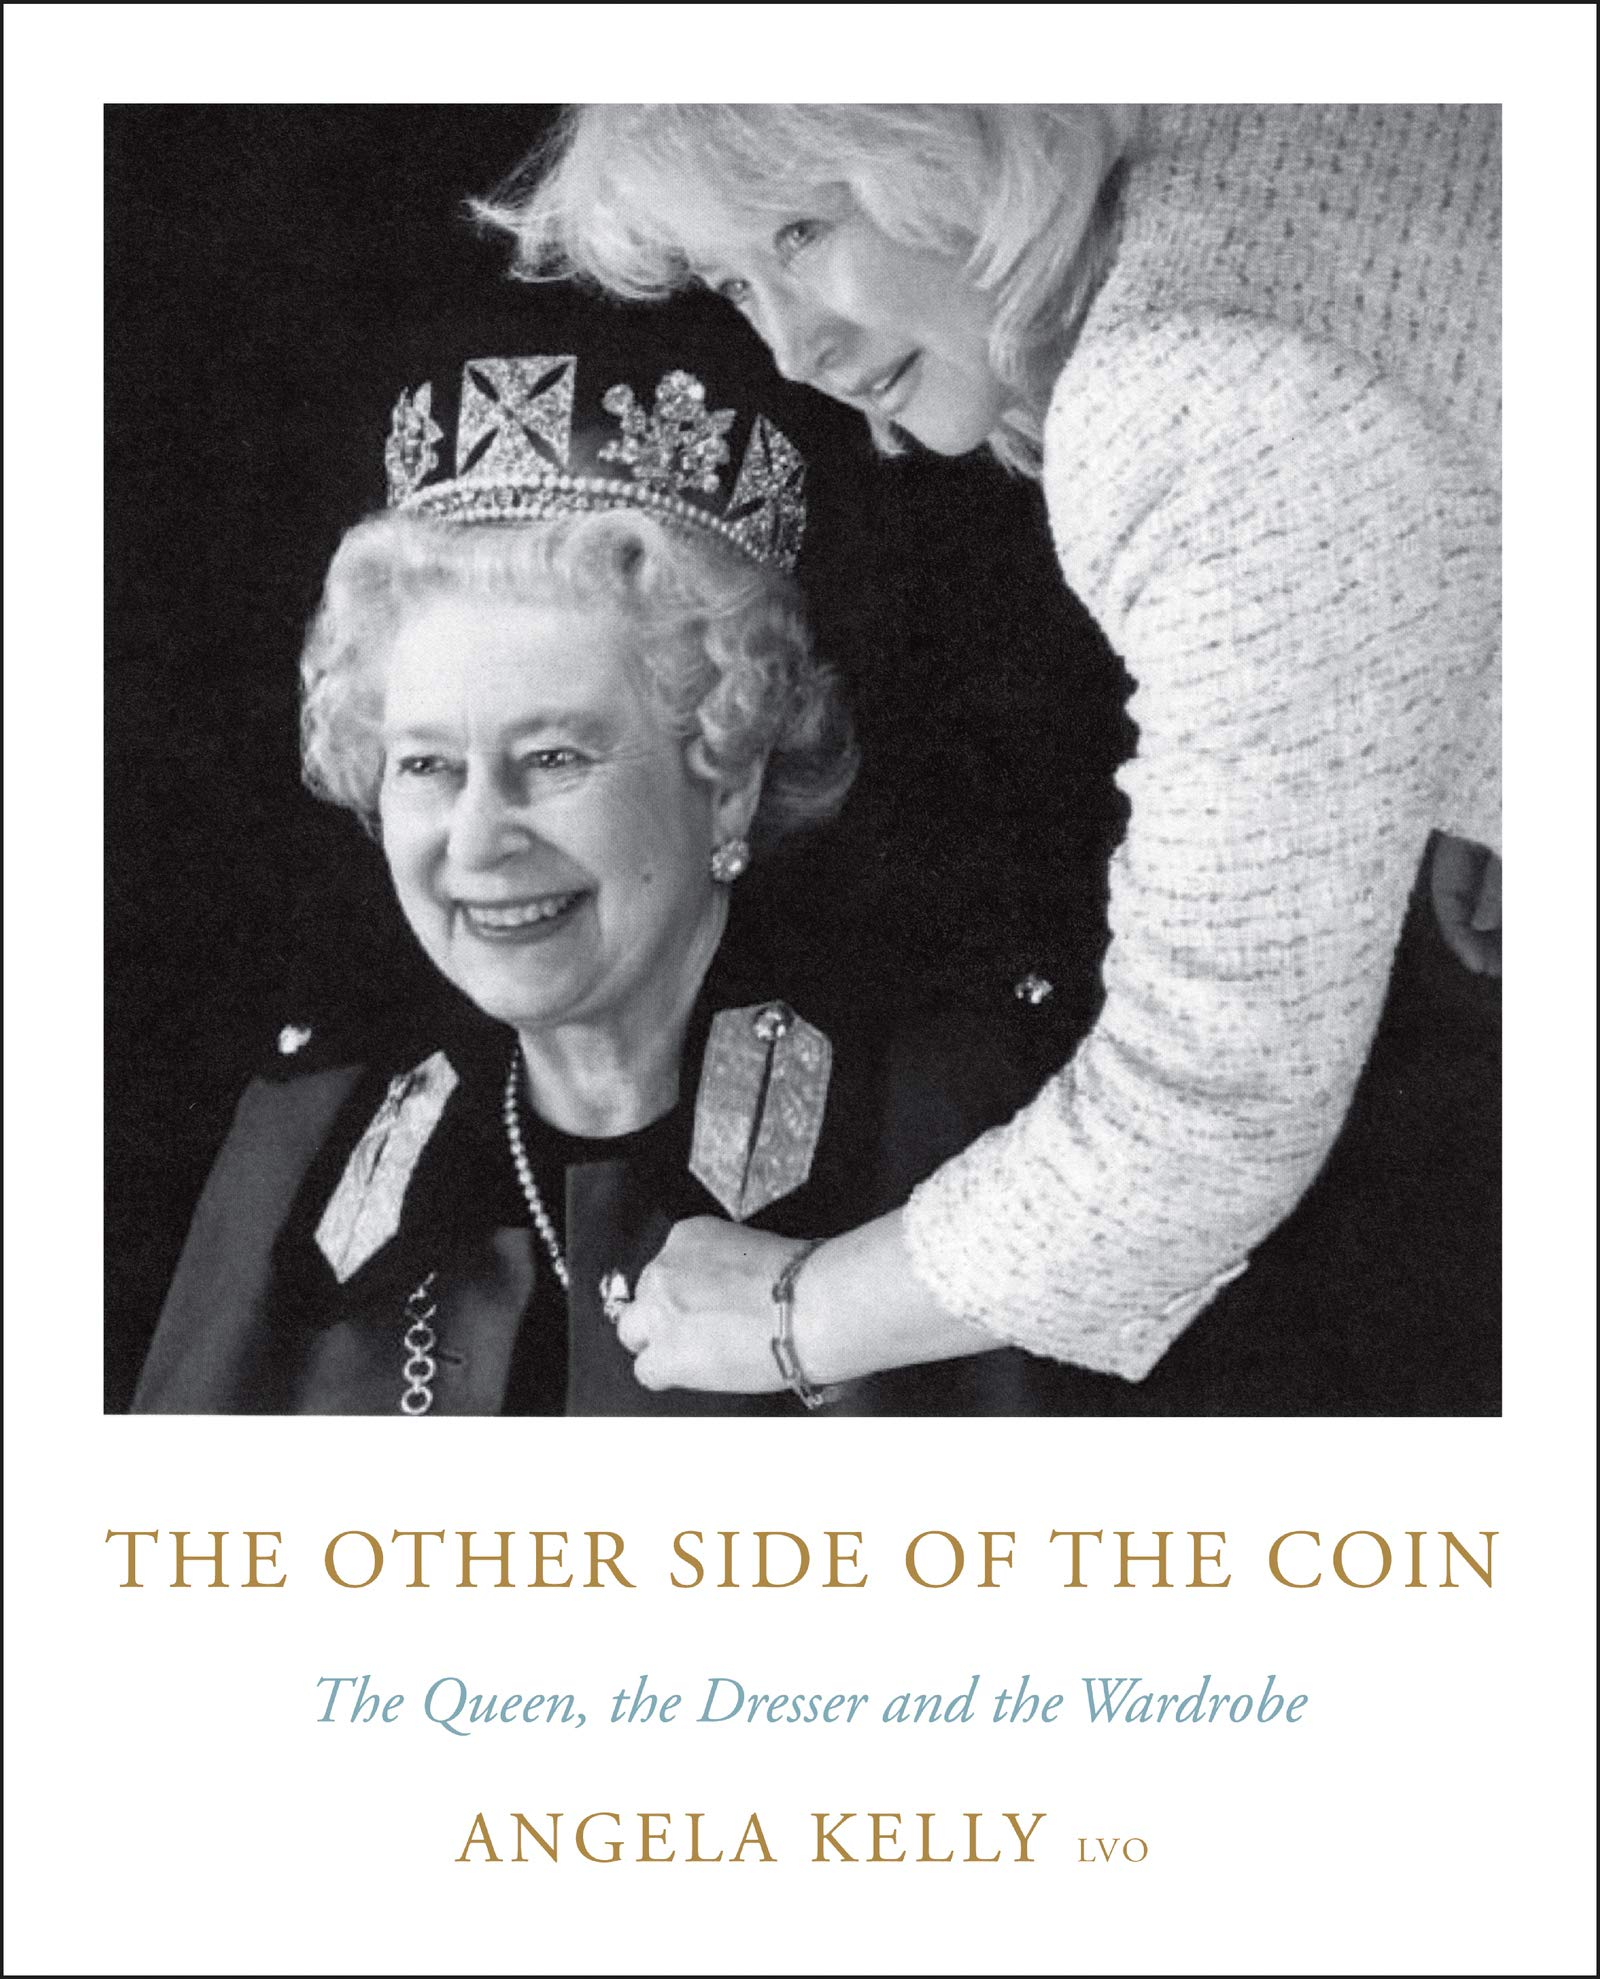 The Other Side of the Coin: the Queen, the Dresser, the Wardrobe